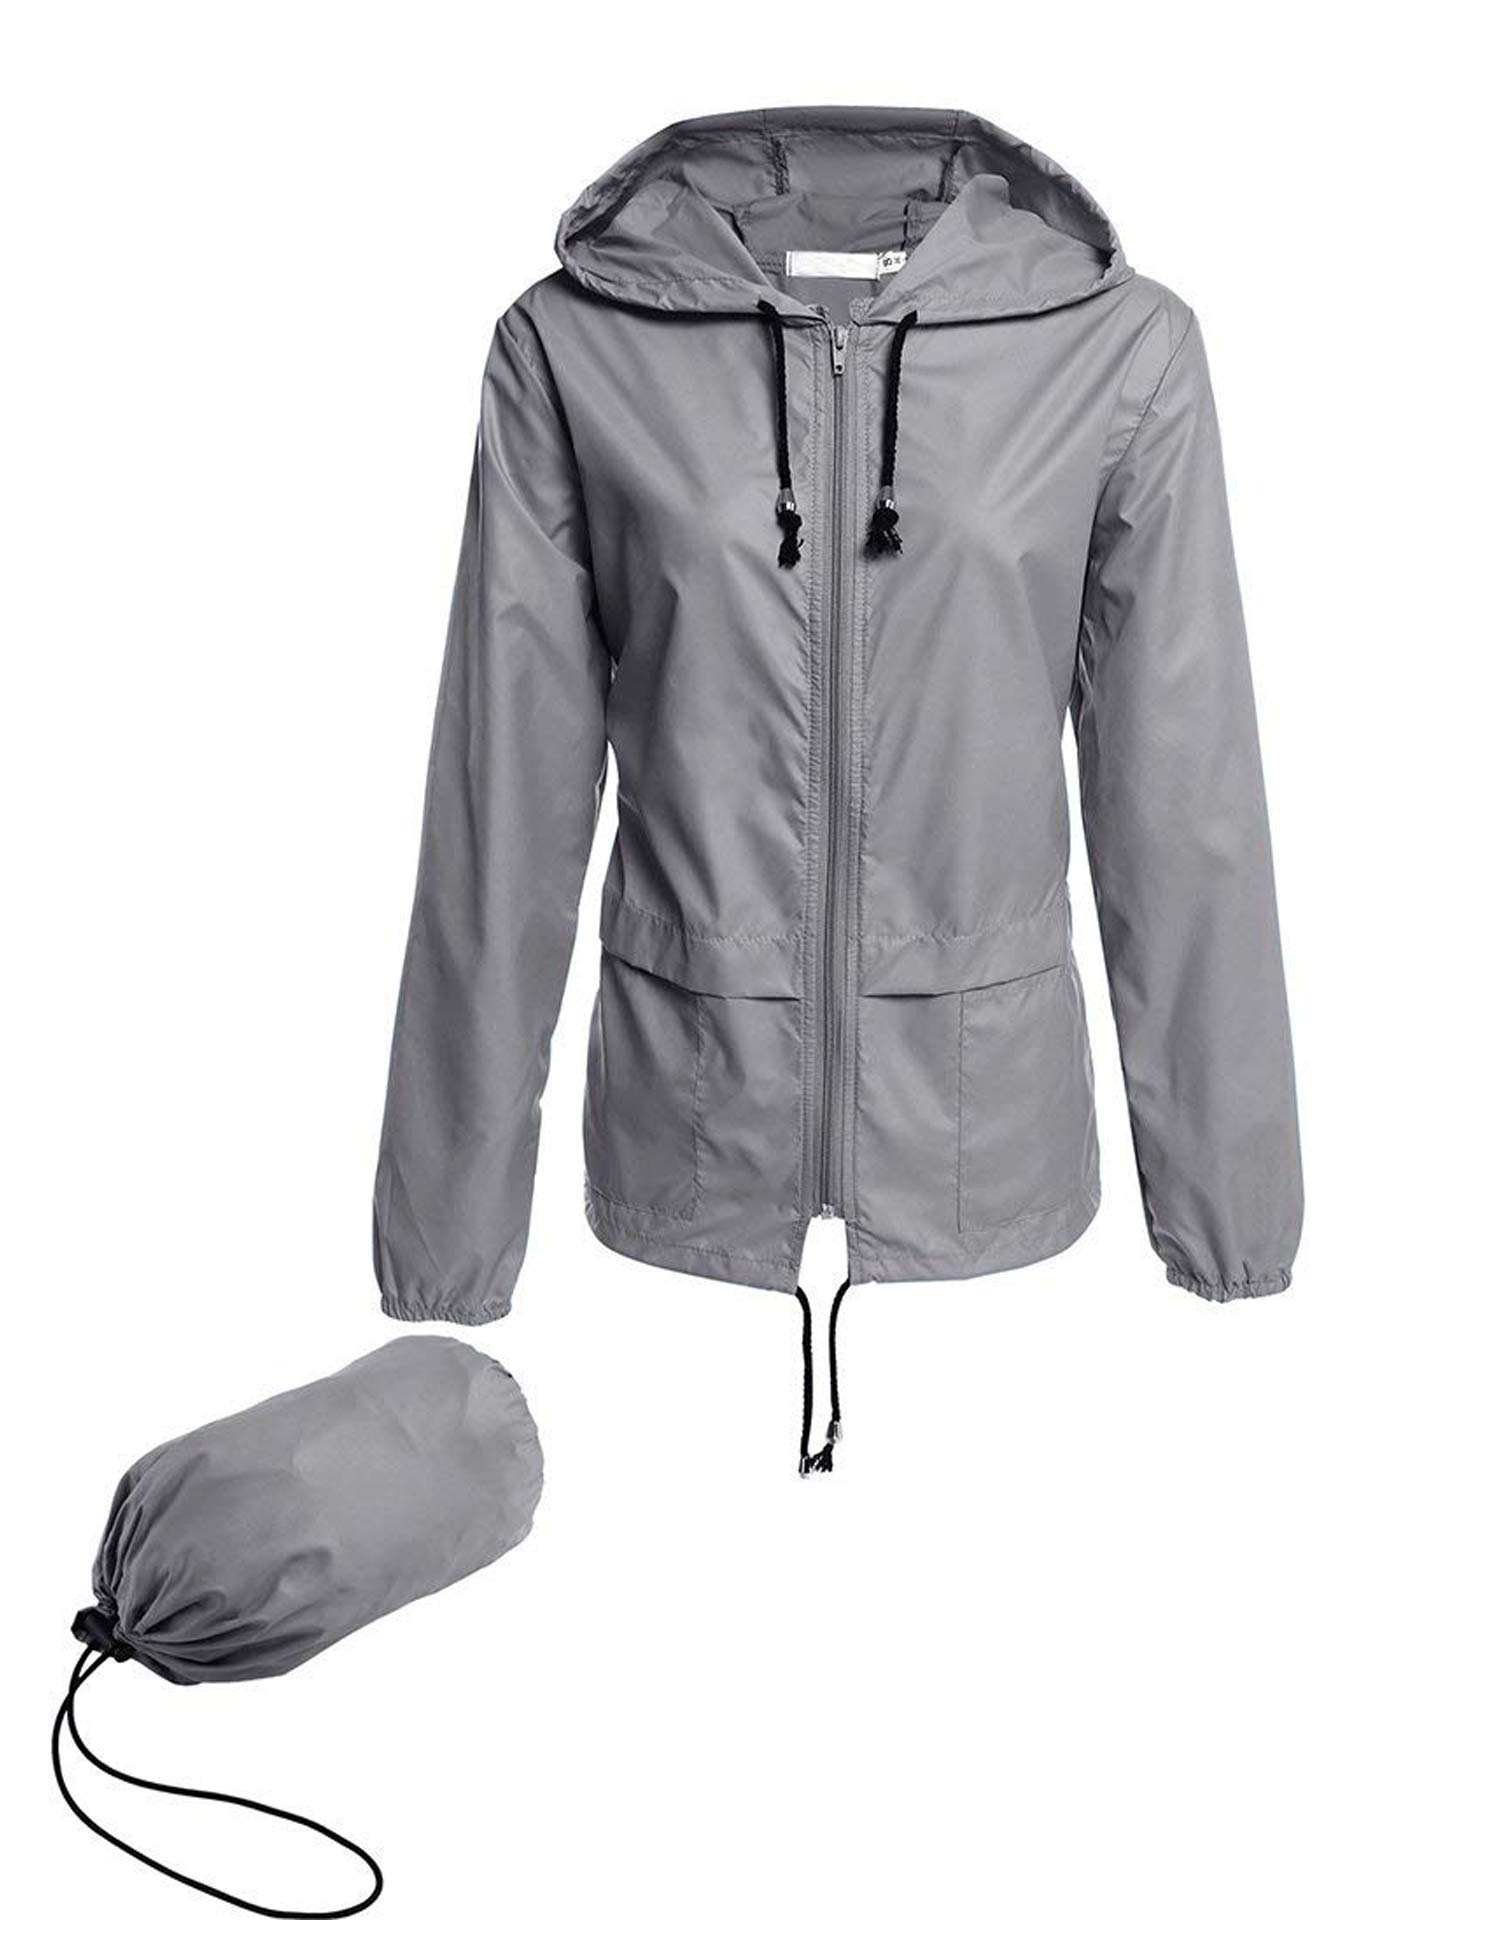 Avoogue Raincoat Women Lightweight Waterproof Rain Jackets Packable Outdoor Hooded Windbreaker Running Coat (Grey XXL) by Avoogue